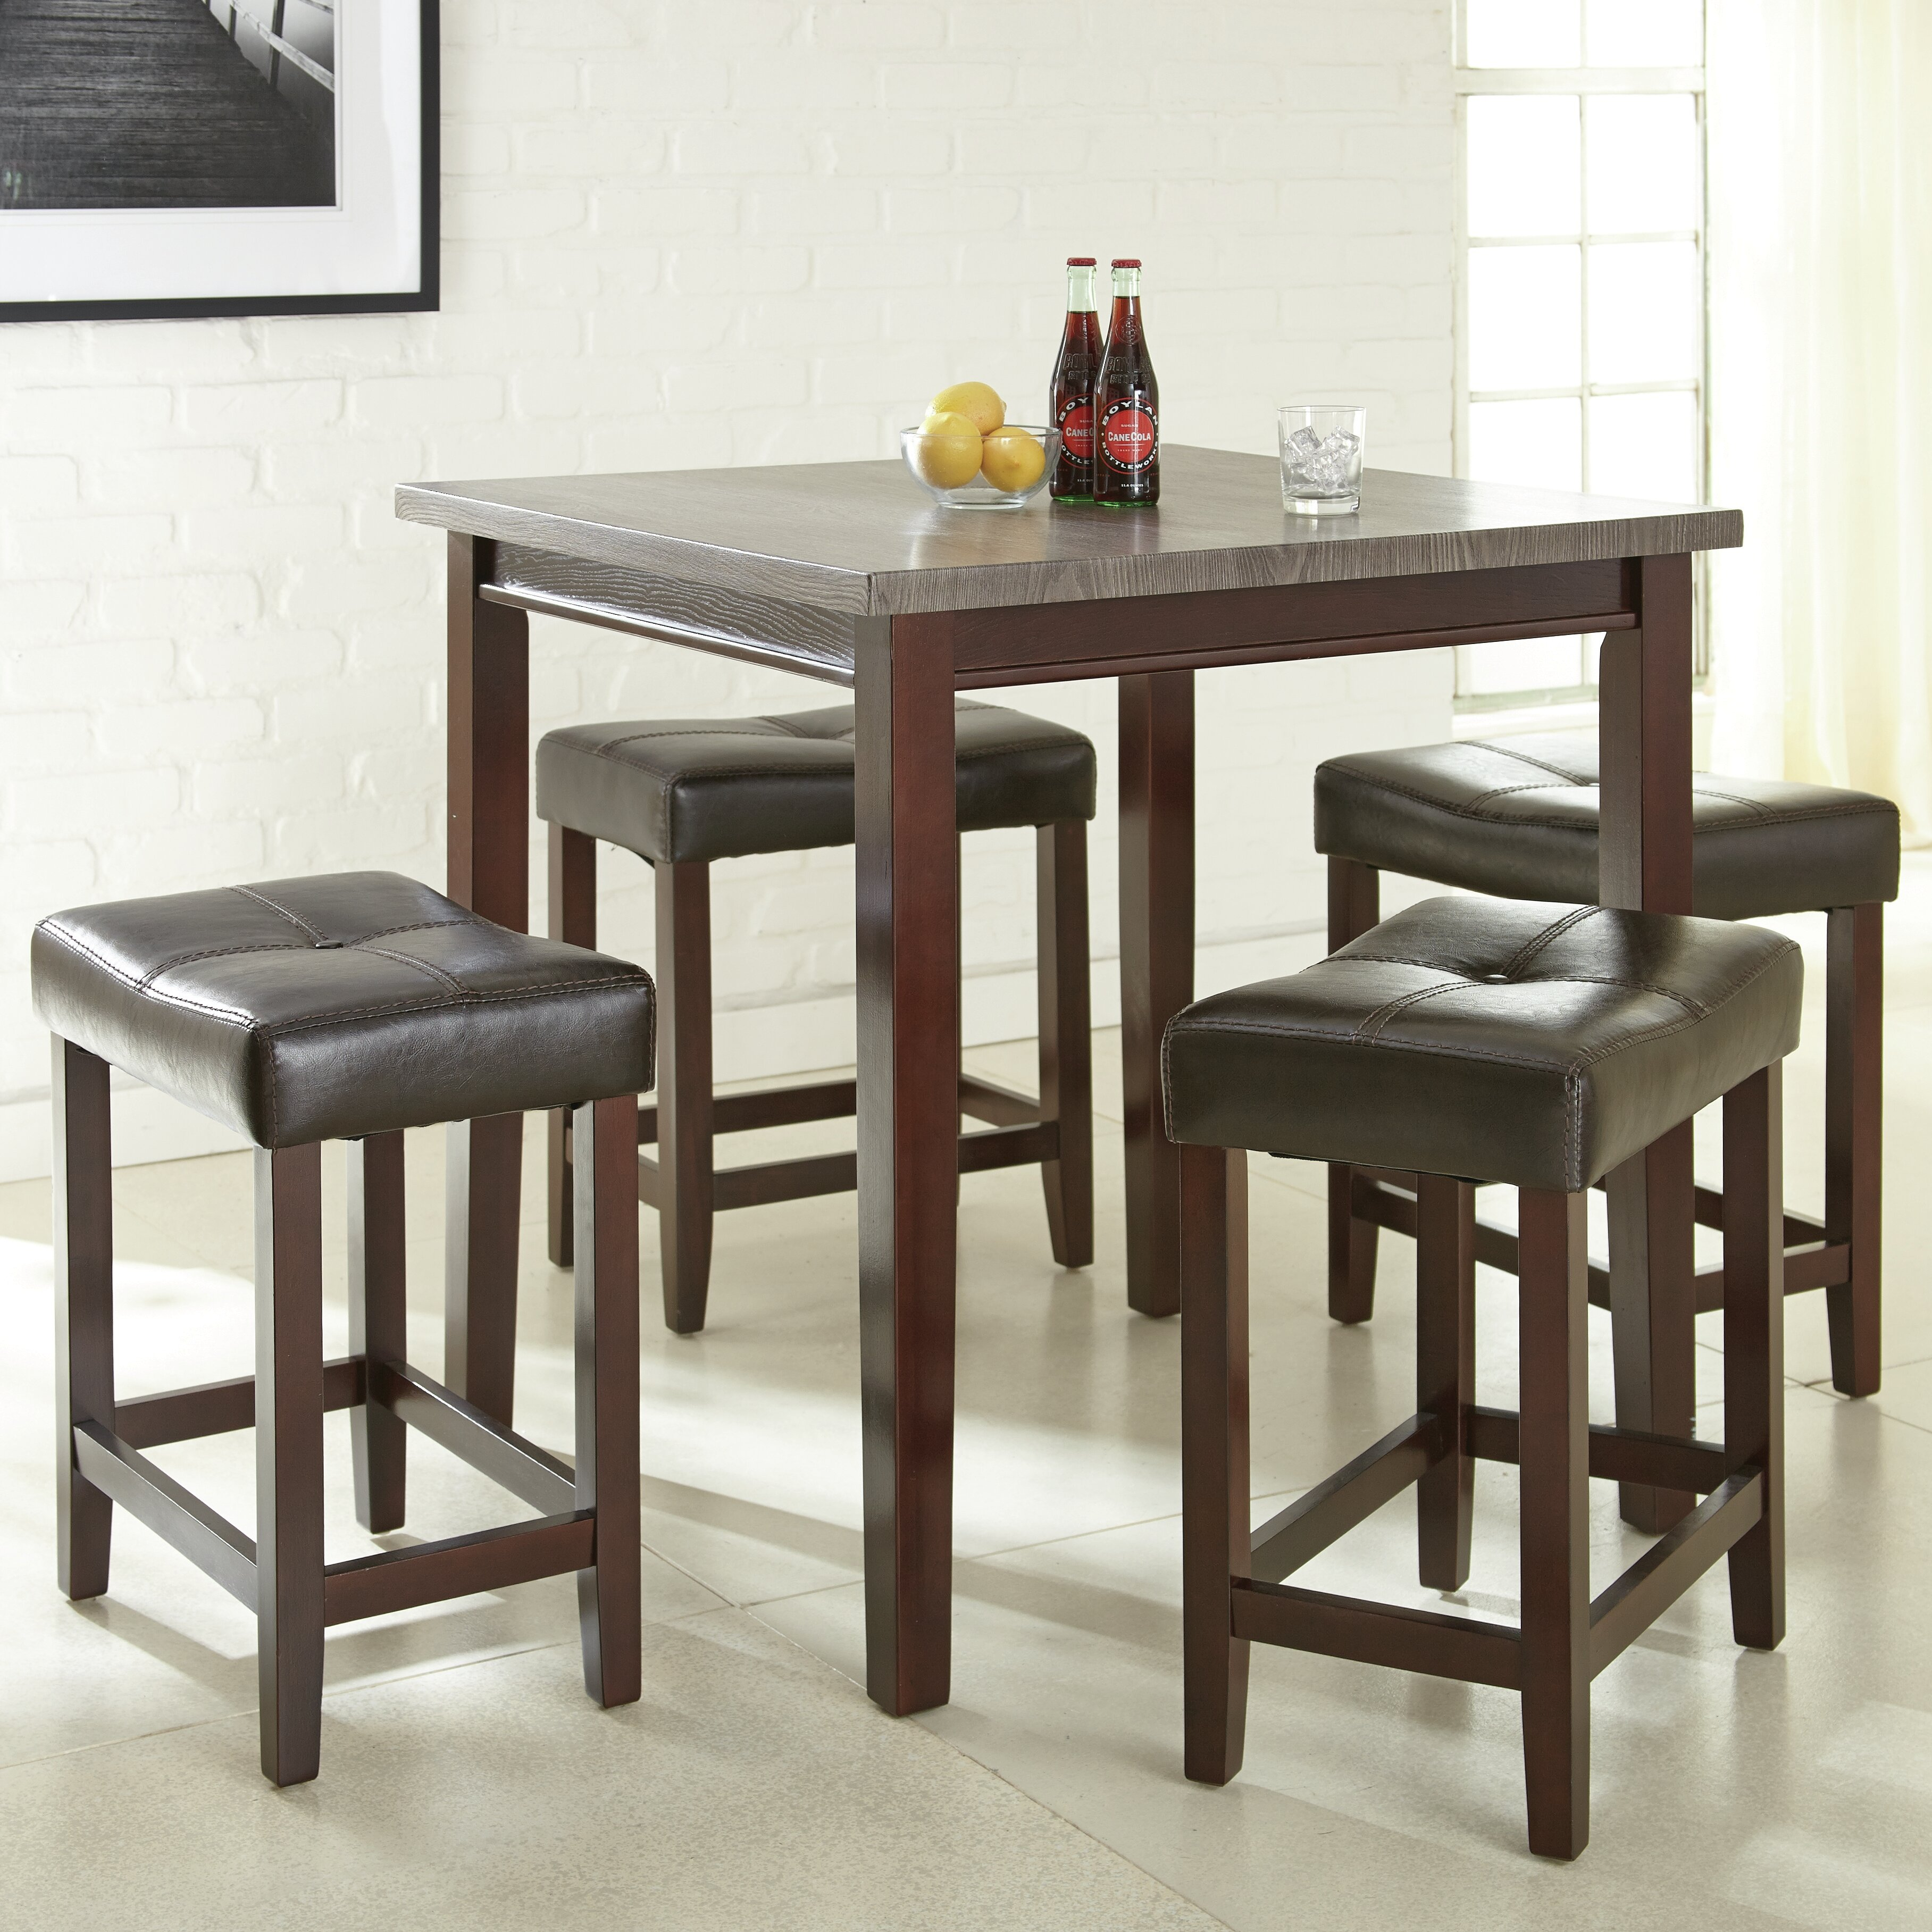 HD wallpapers 5 piece dining set counter height